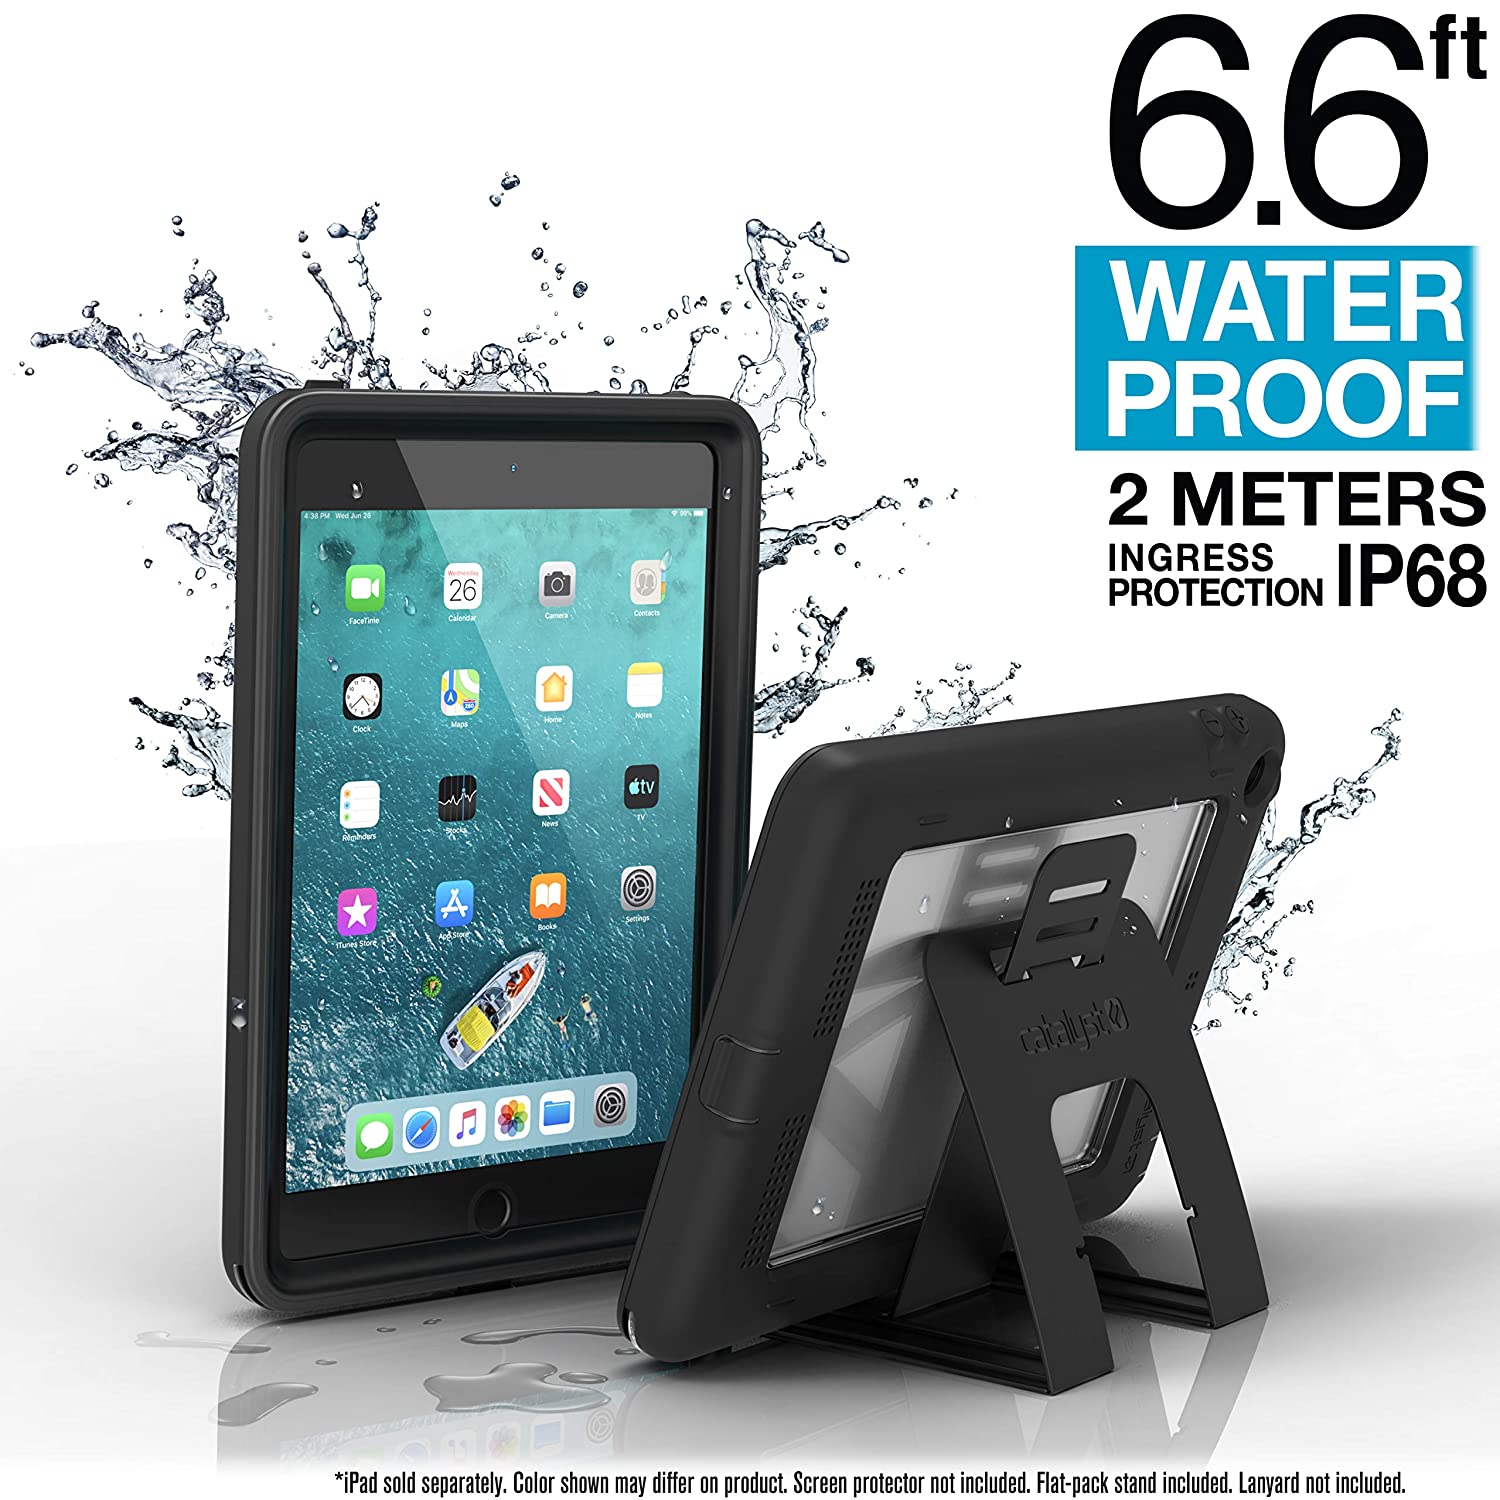 iPad Mini 4 Waterproof Case Shockproof by Catalyst, High Touch Sensitivity ID, Multi Position Stand, Military Grade Premium Quality Material, Stealth ...